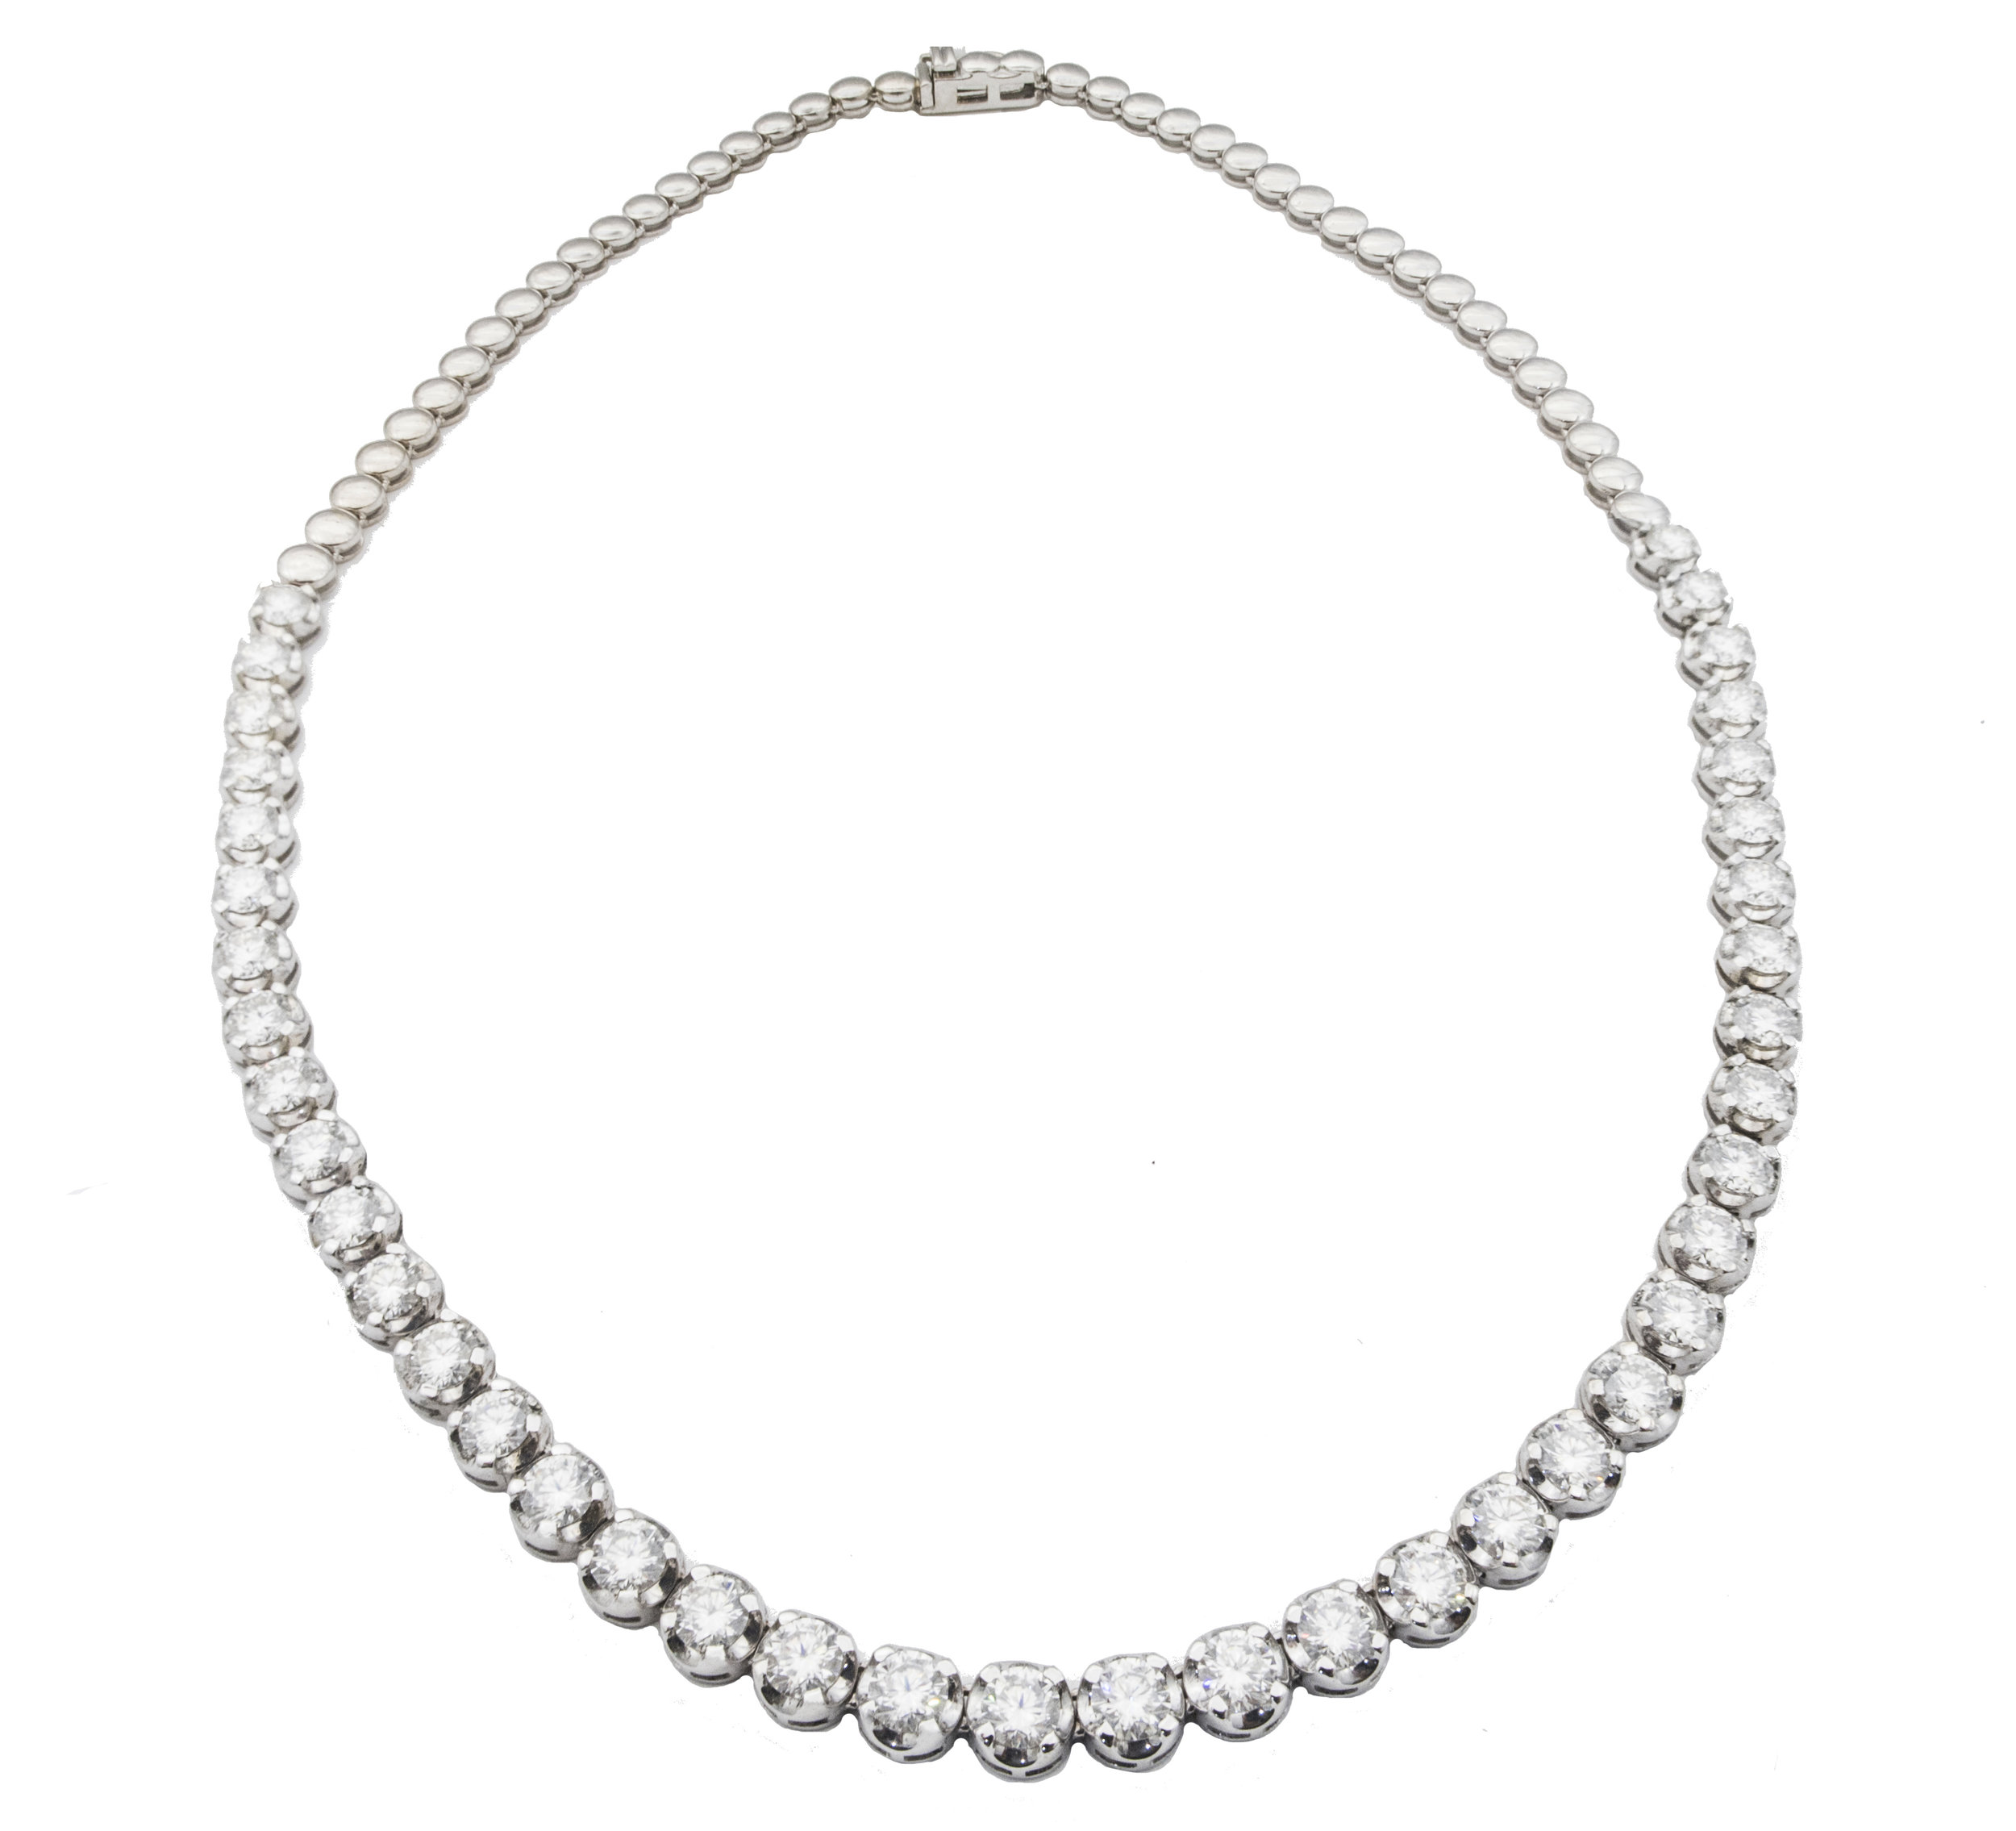 Moissanite necklace!